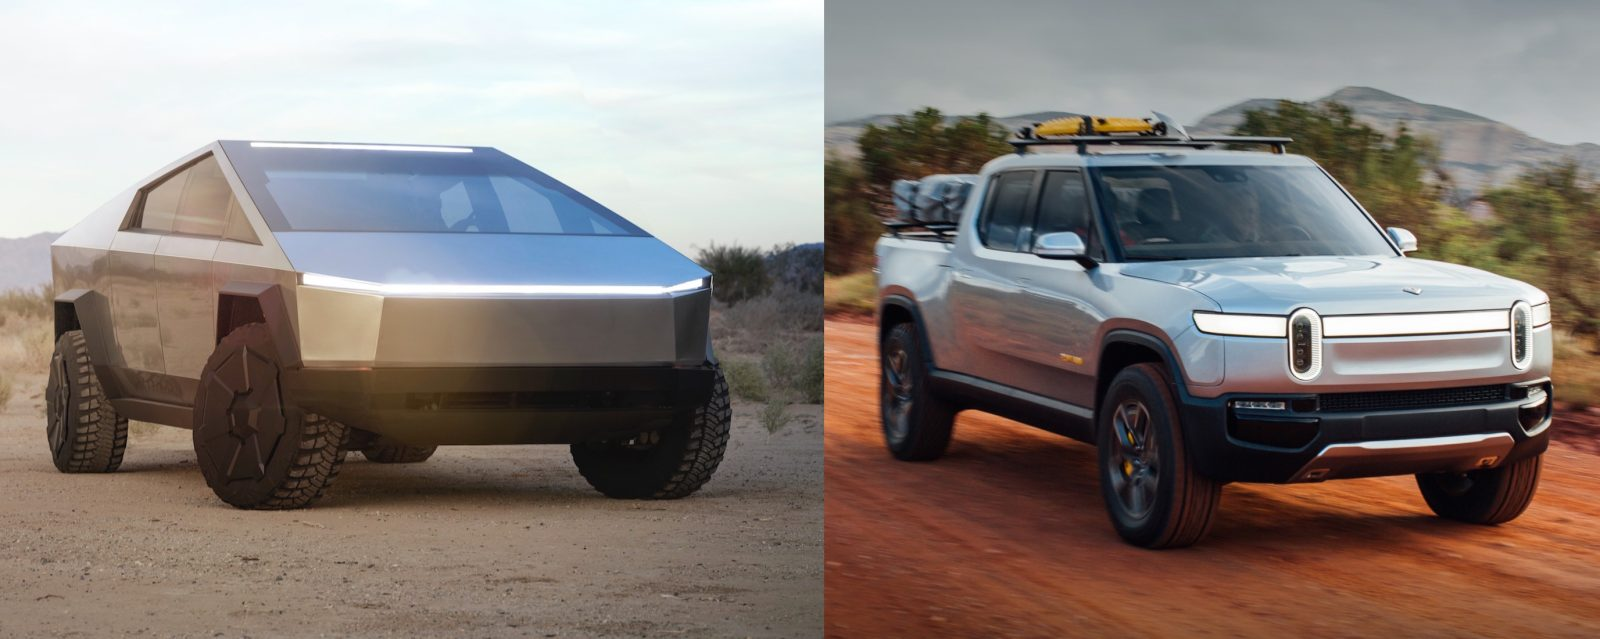 Tesla Cybertruck vs Rivian R1T electric pickup comparison – shocking lead from Tesla